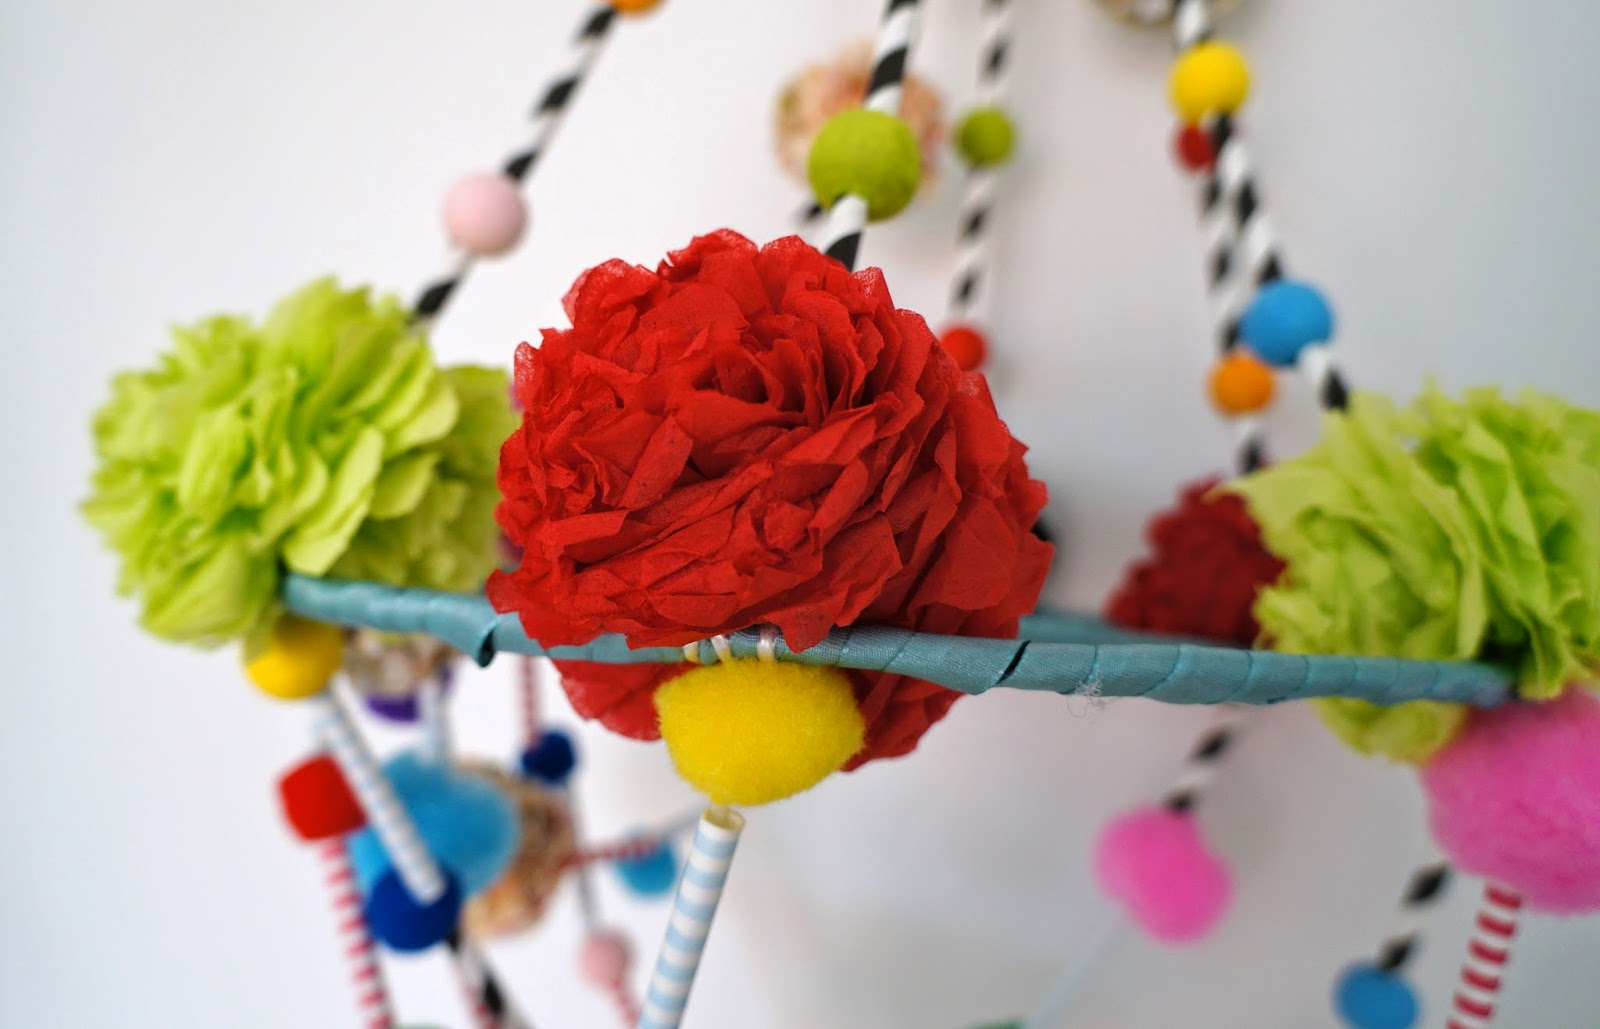 Minimal boho diy polish pajaki chandelier after lots of fun with beads pompoms small pieces of straws and flowers we got the lovely colorful pajaki arubaitofo Images